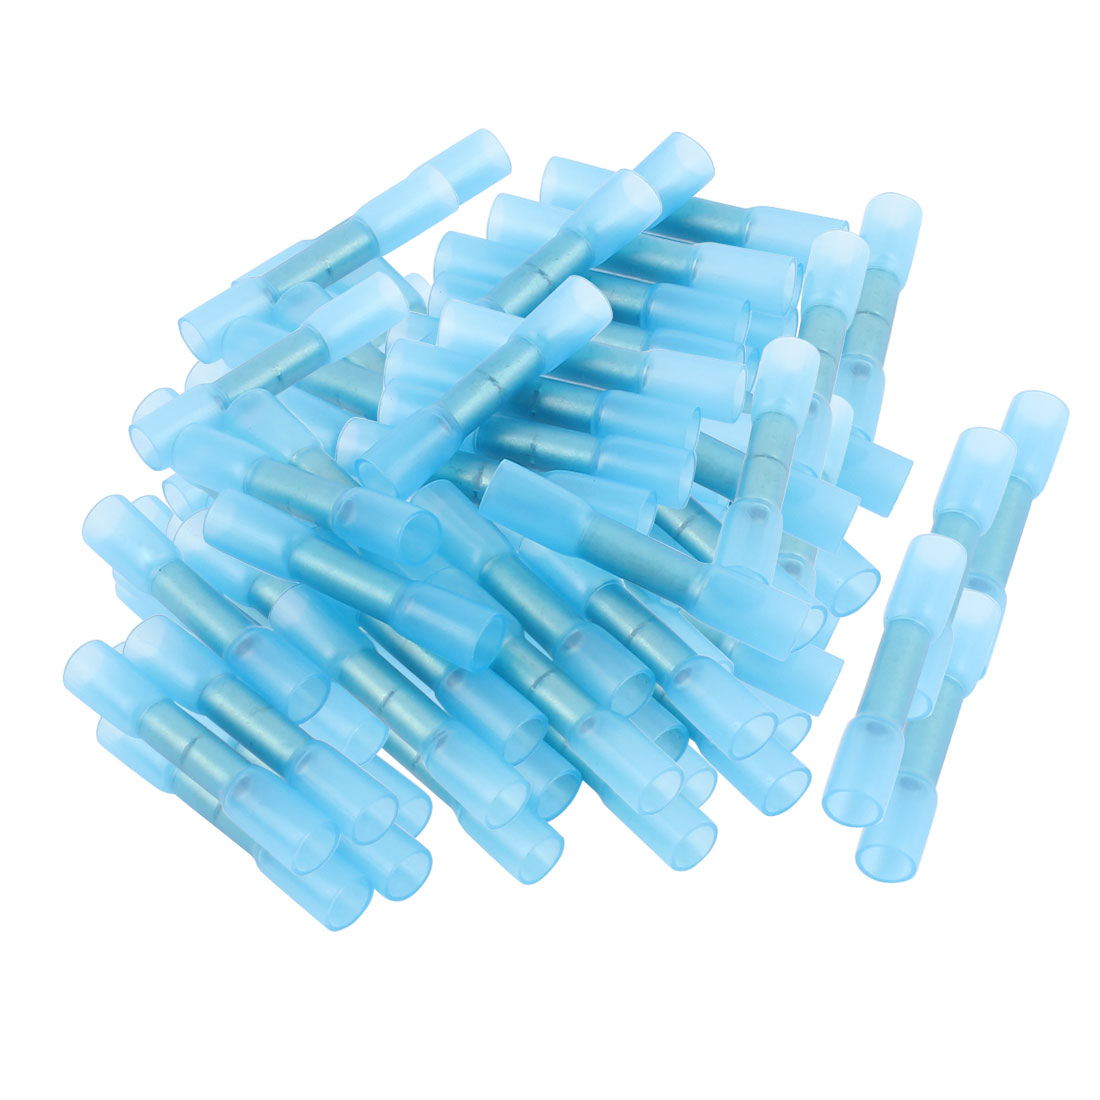 100 Pcs BHT2 Heat Shrink Electrical Shrinkable Solder Wire Butt Terminals AWG 16-14 Blue